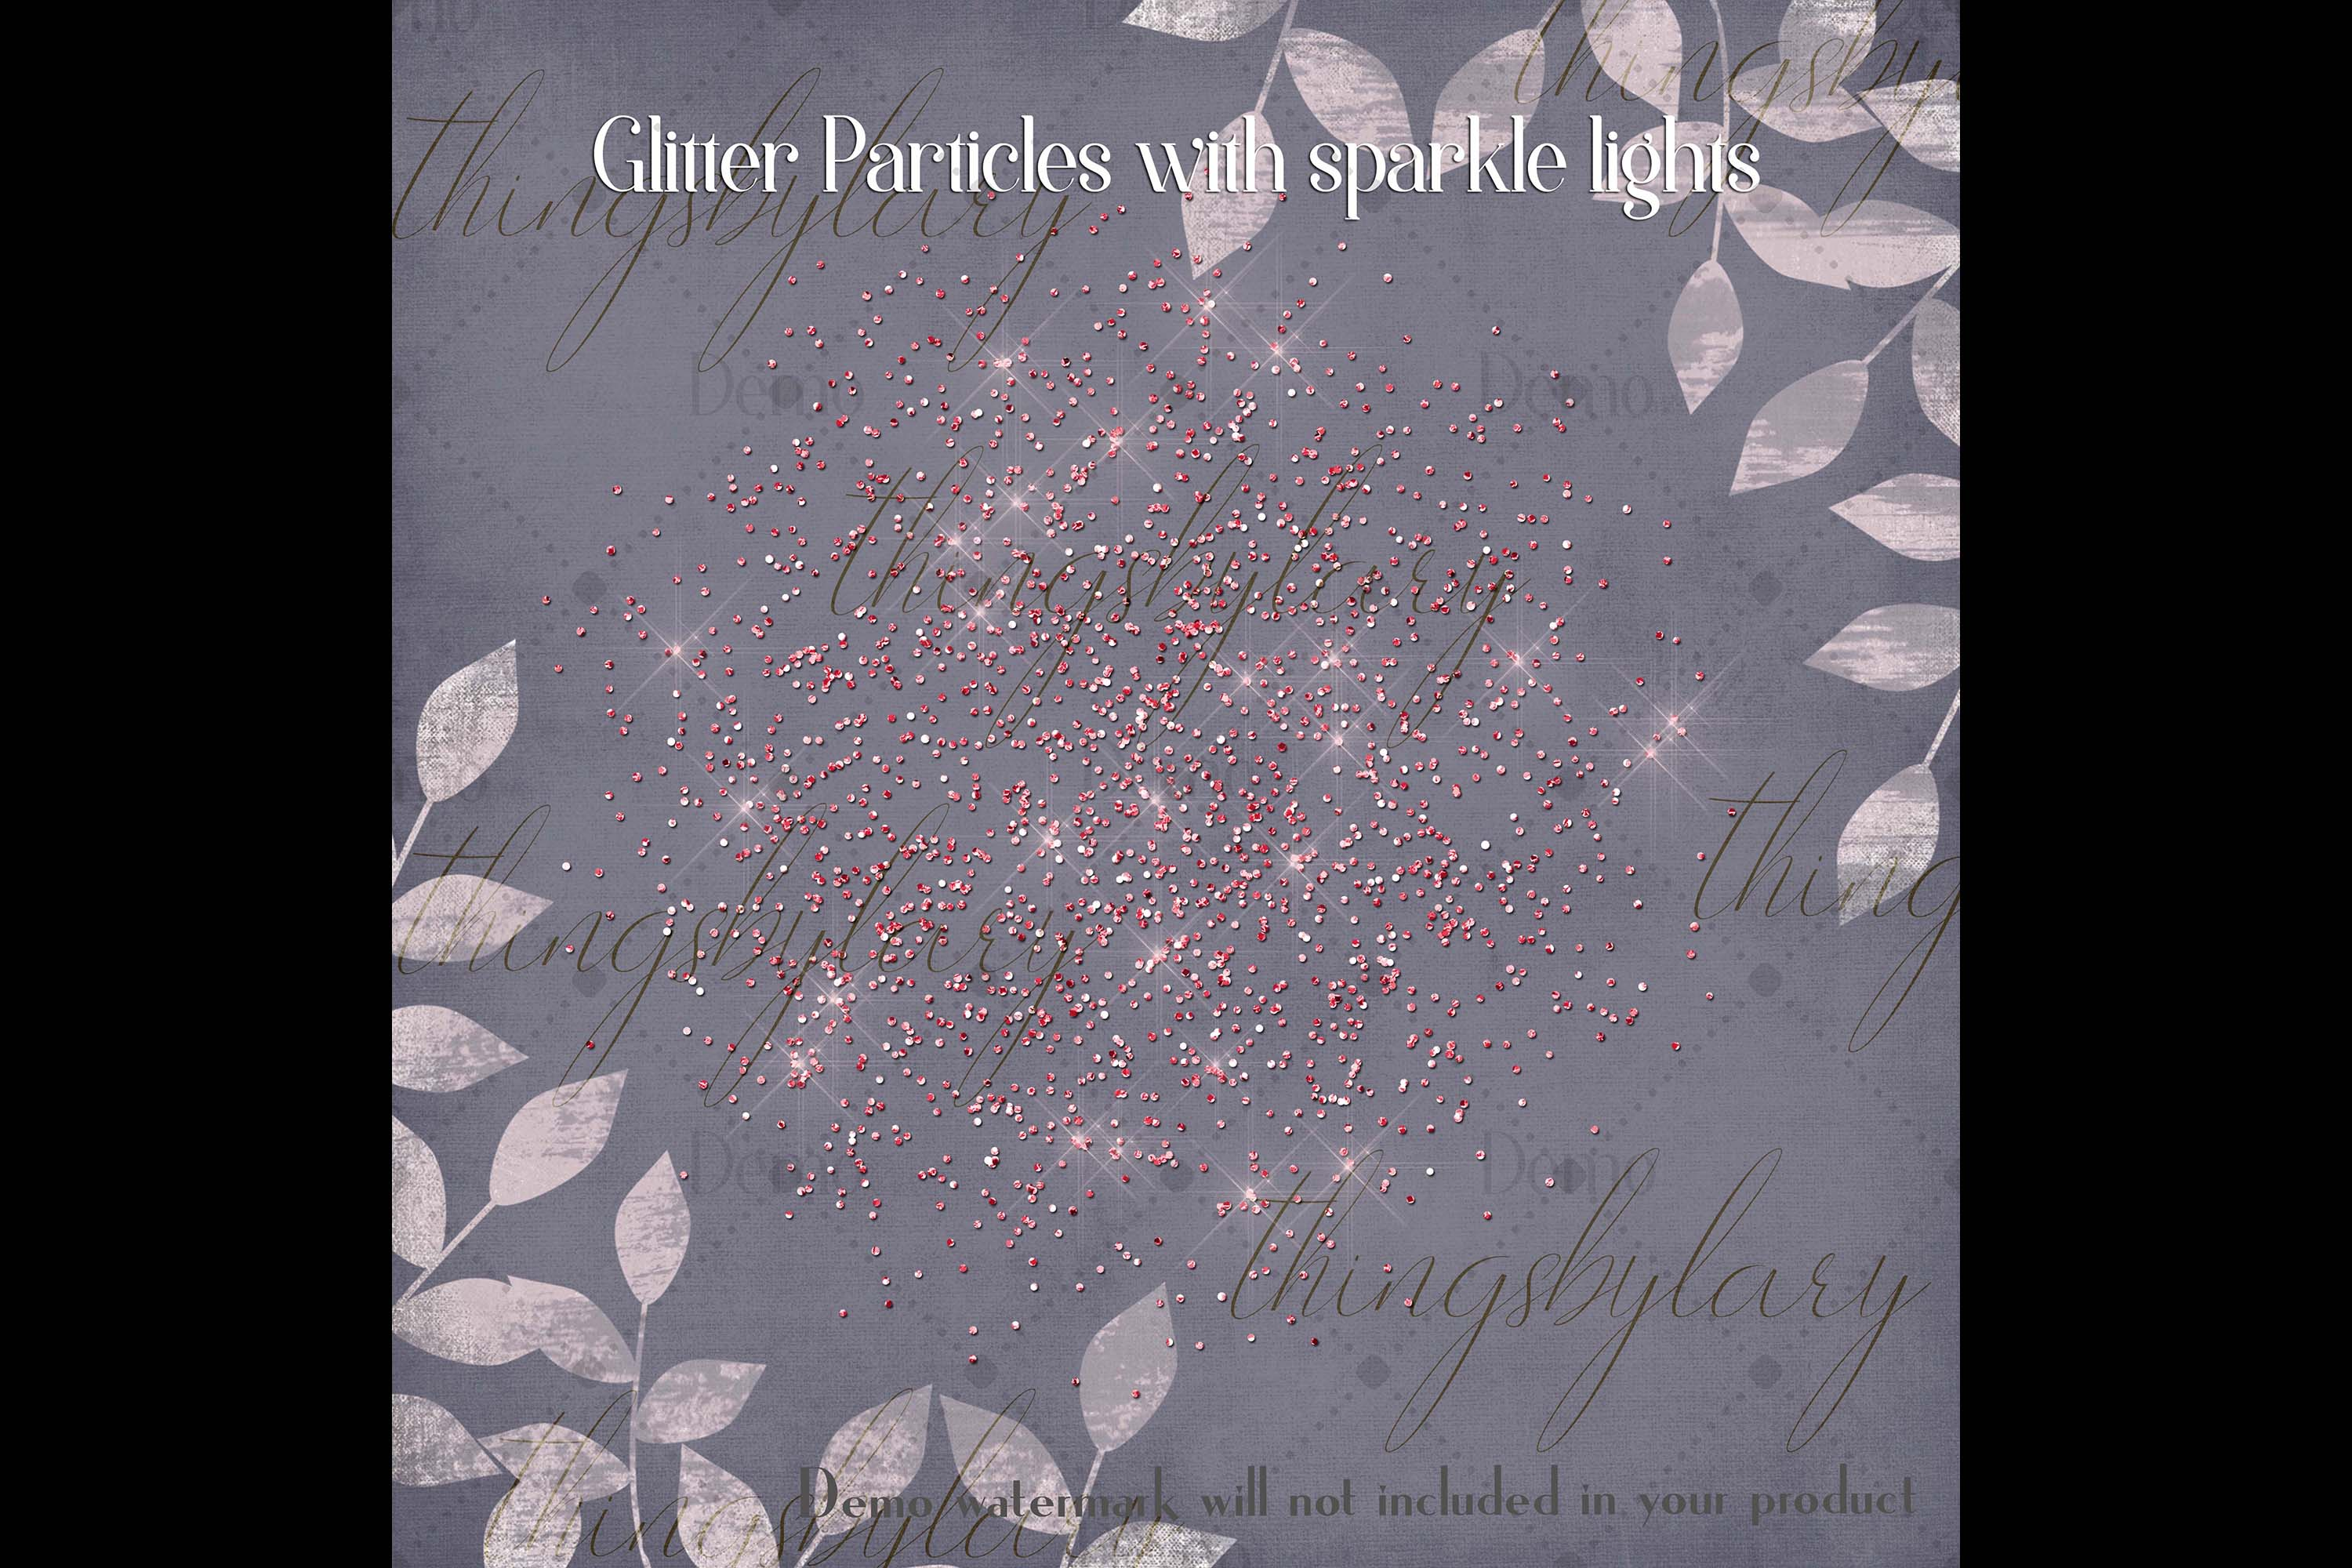 32 Glitter Particles Overlay Images Glitter Dust Confetti example image 4